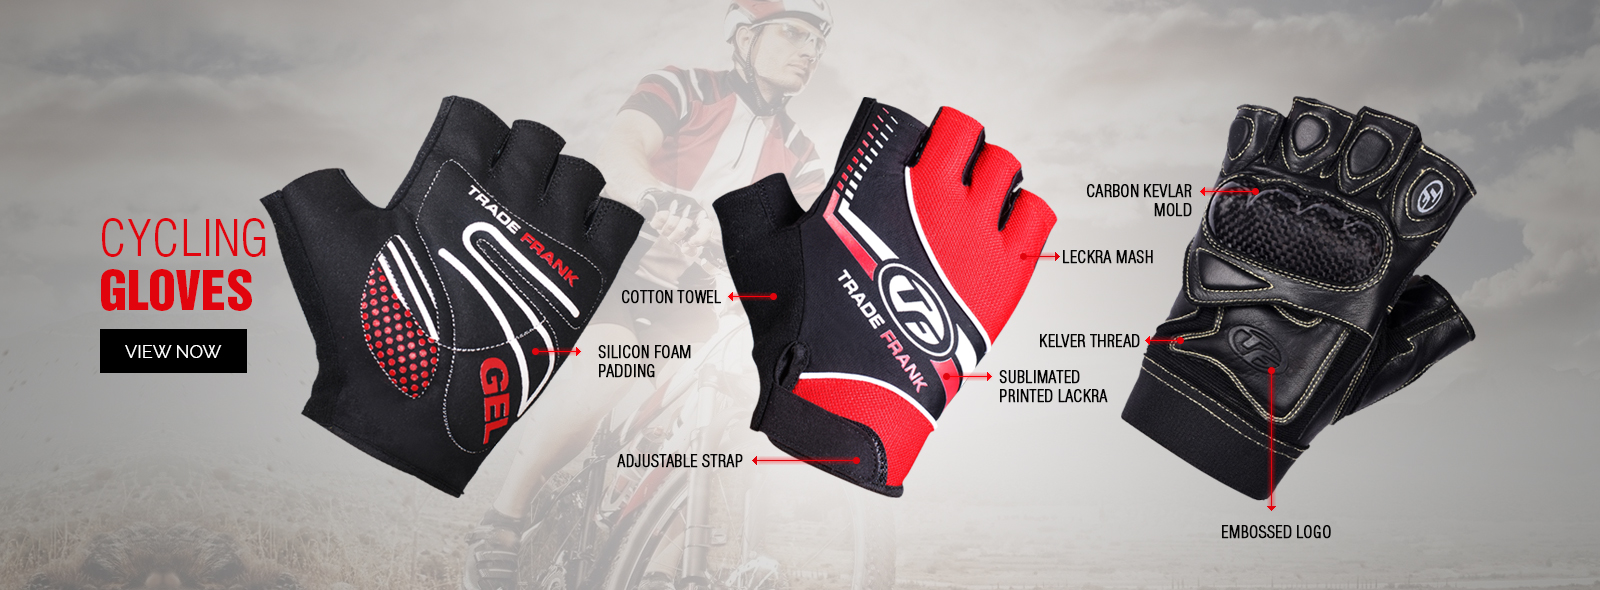 Cycling Gloves-6